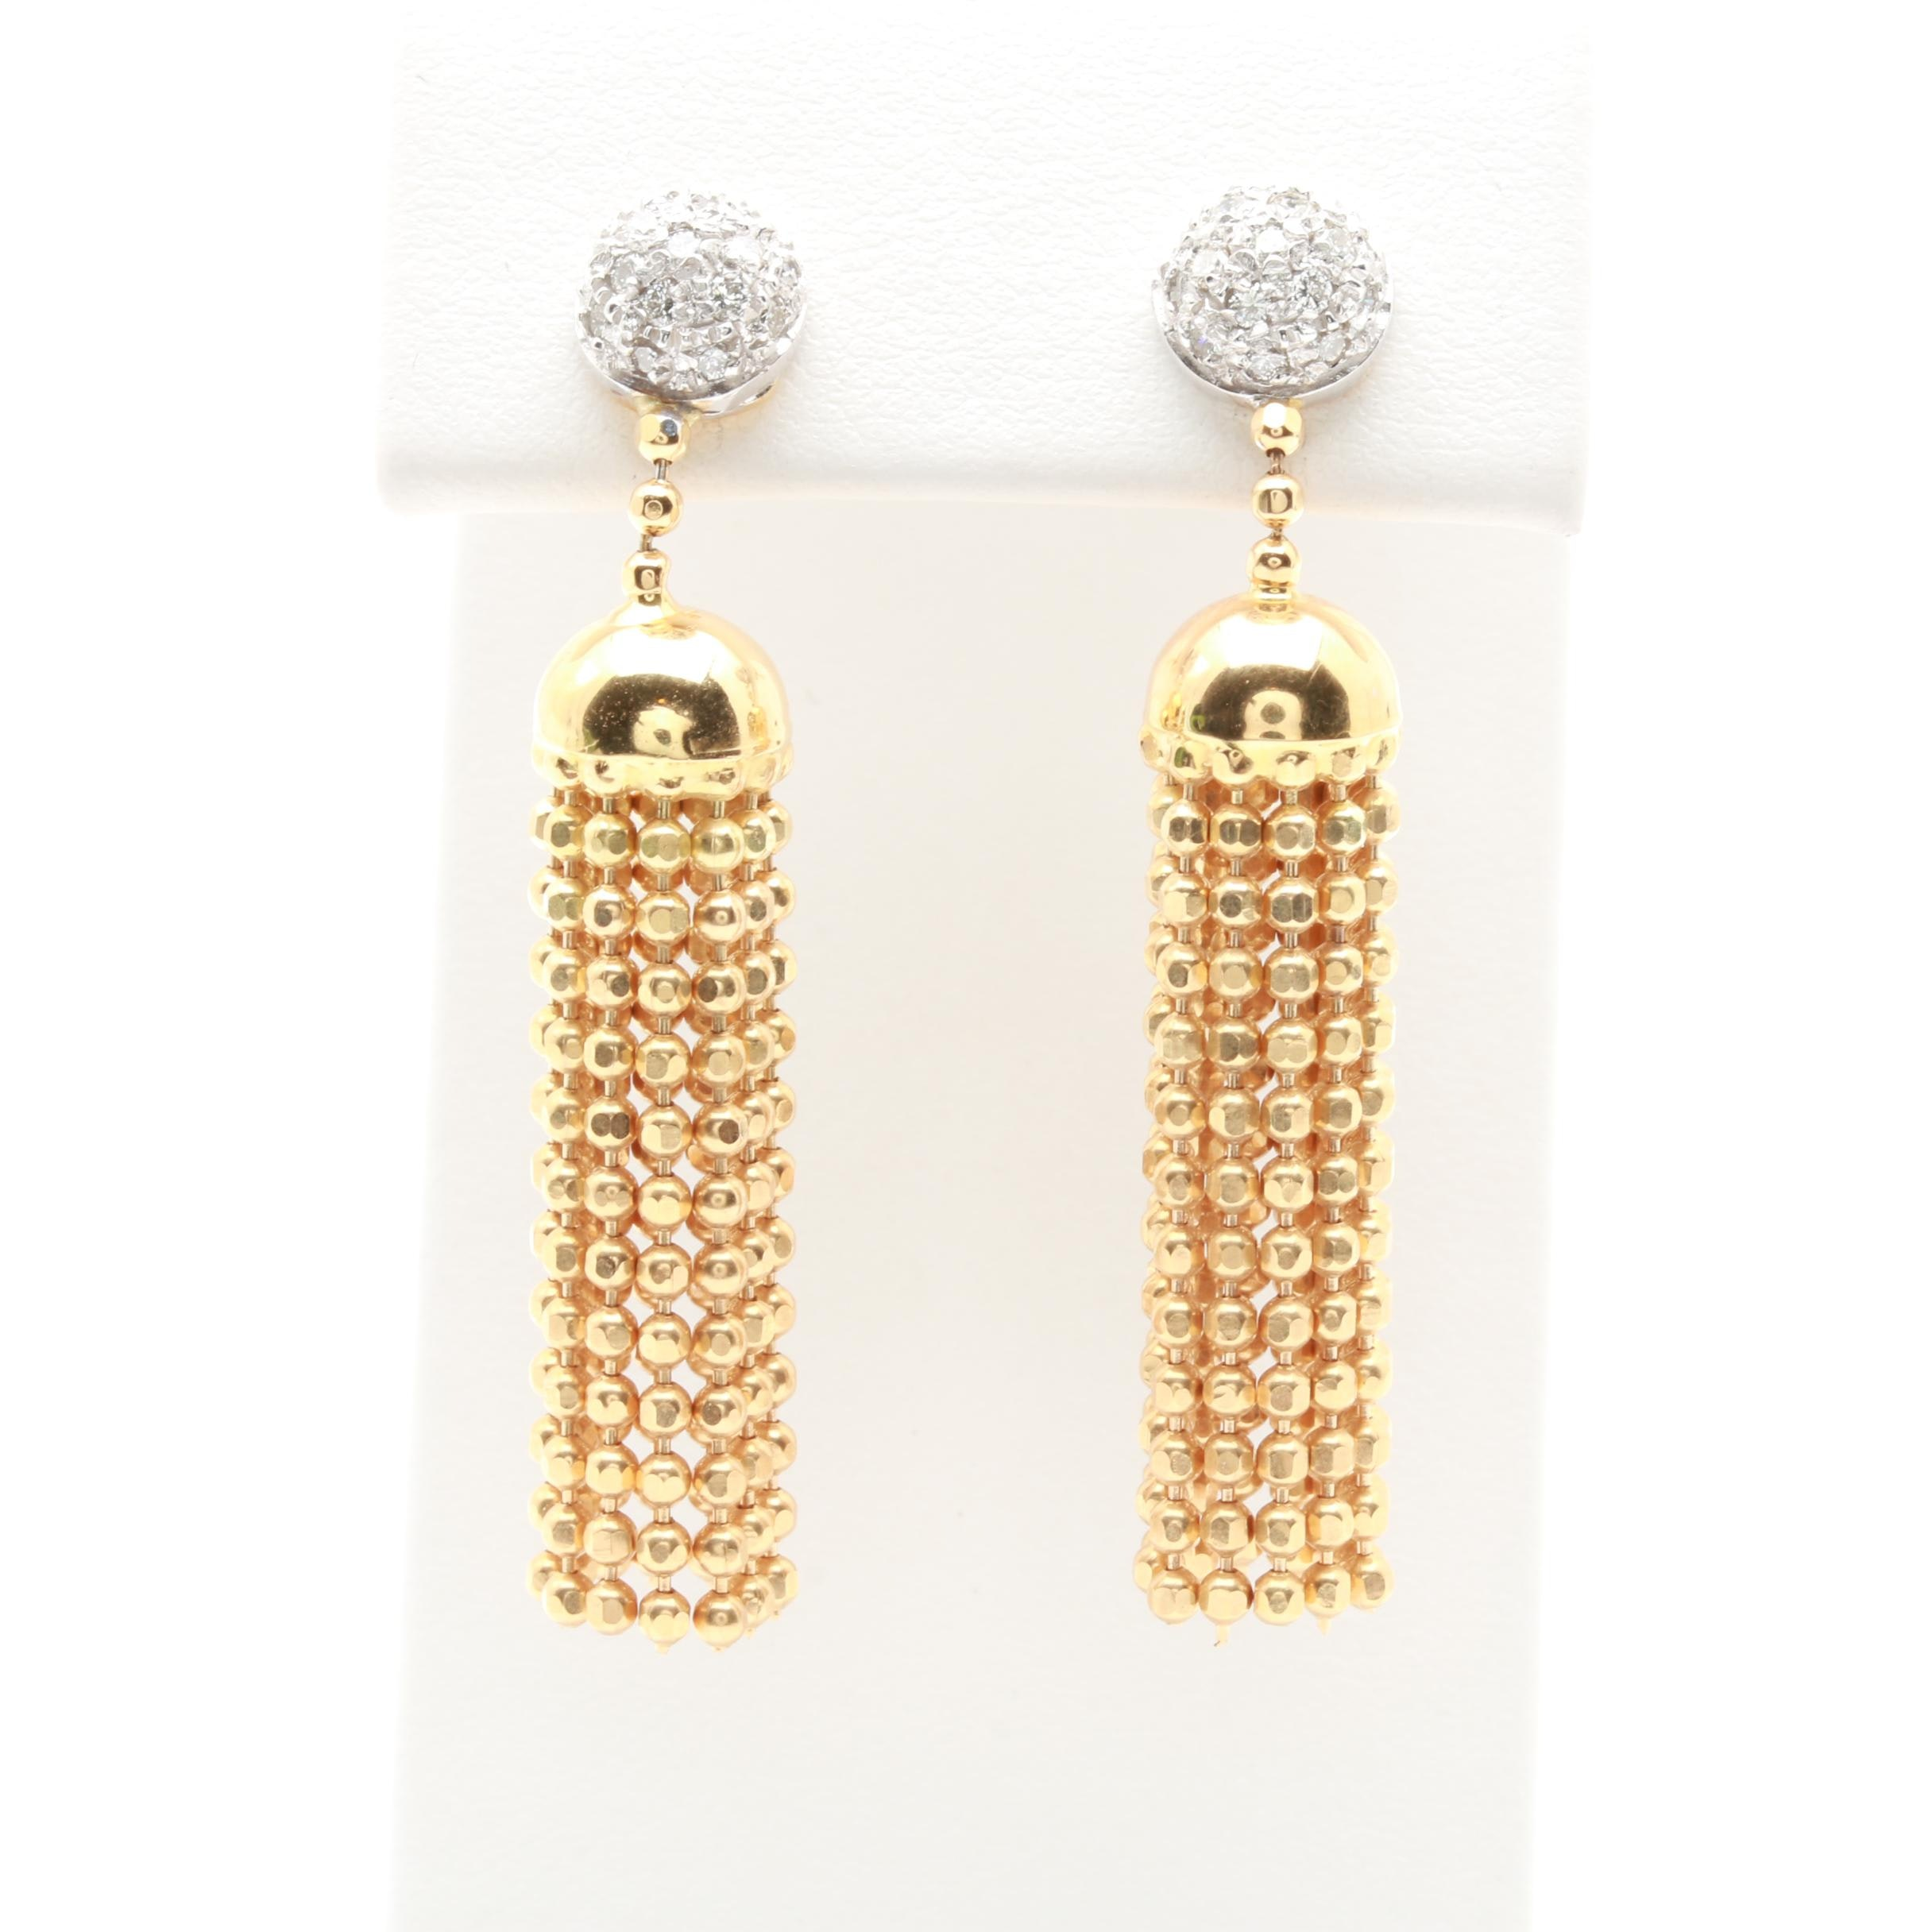 18K Yellow Gold Diamond Earrings With White Gold Accents